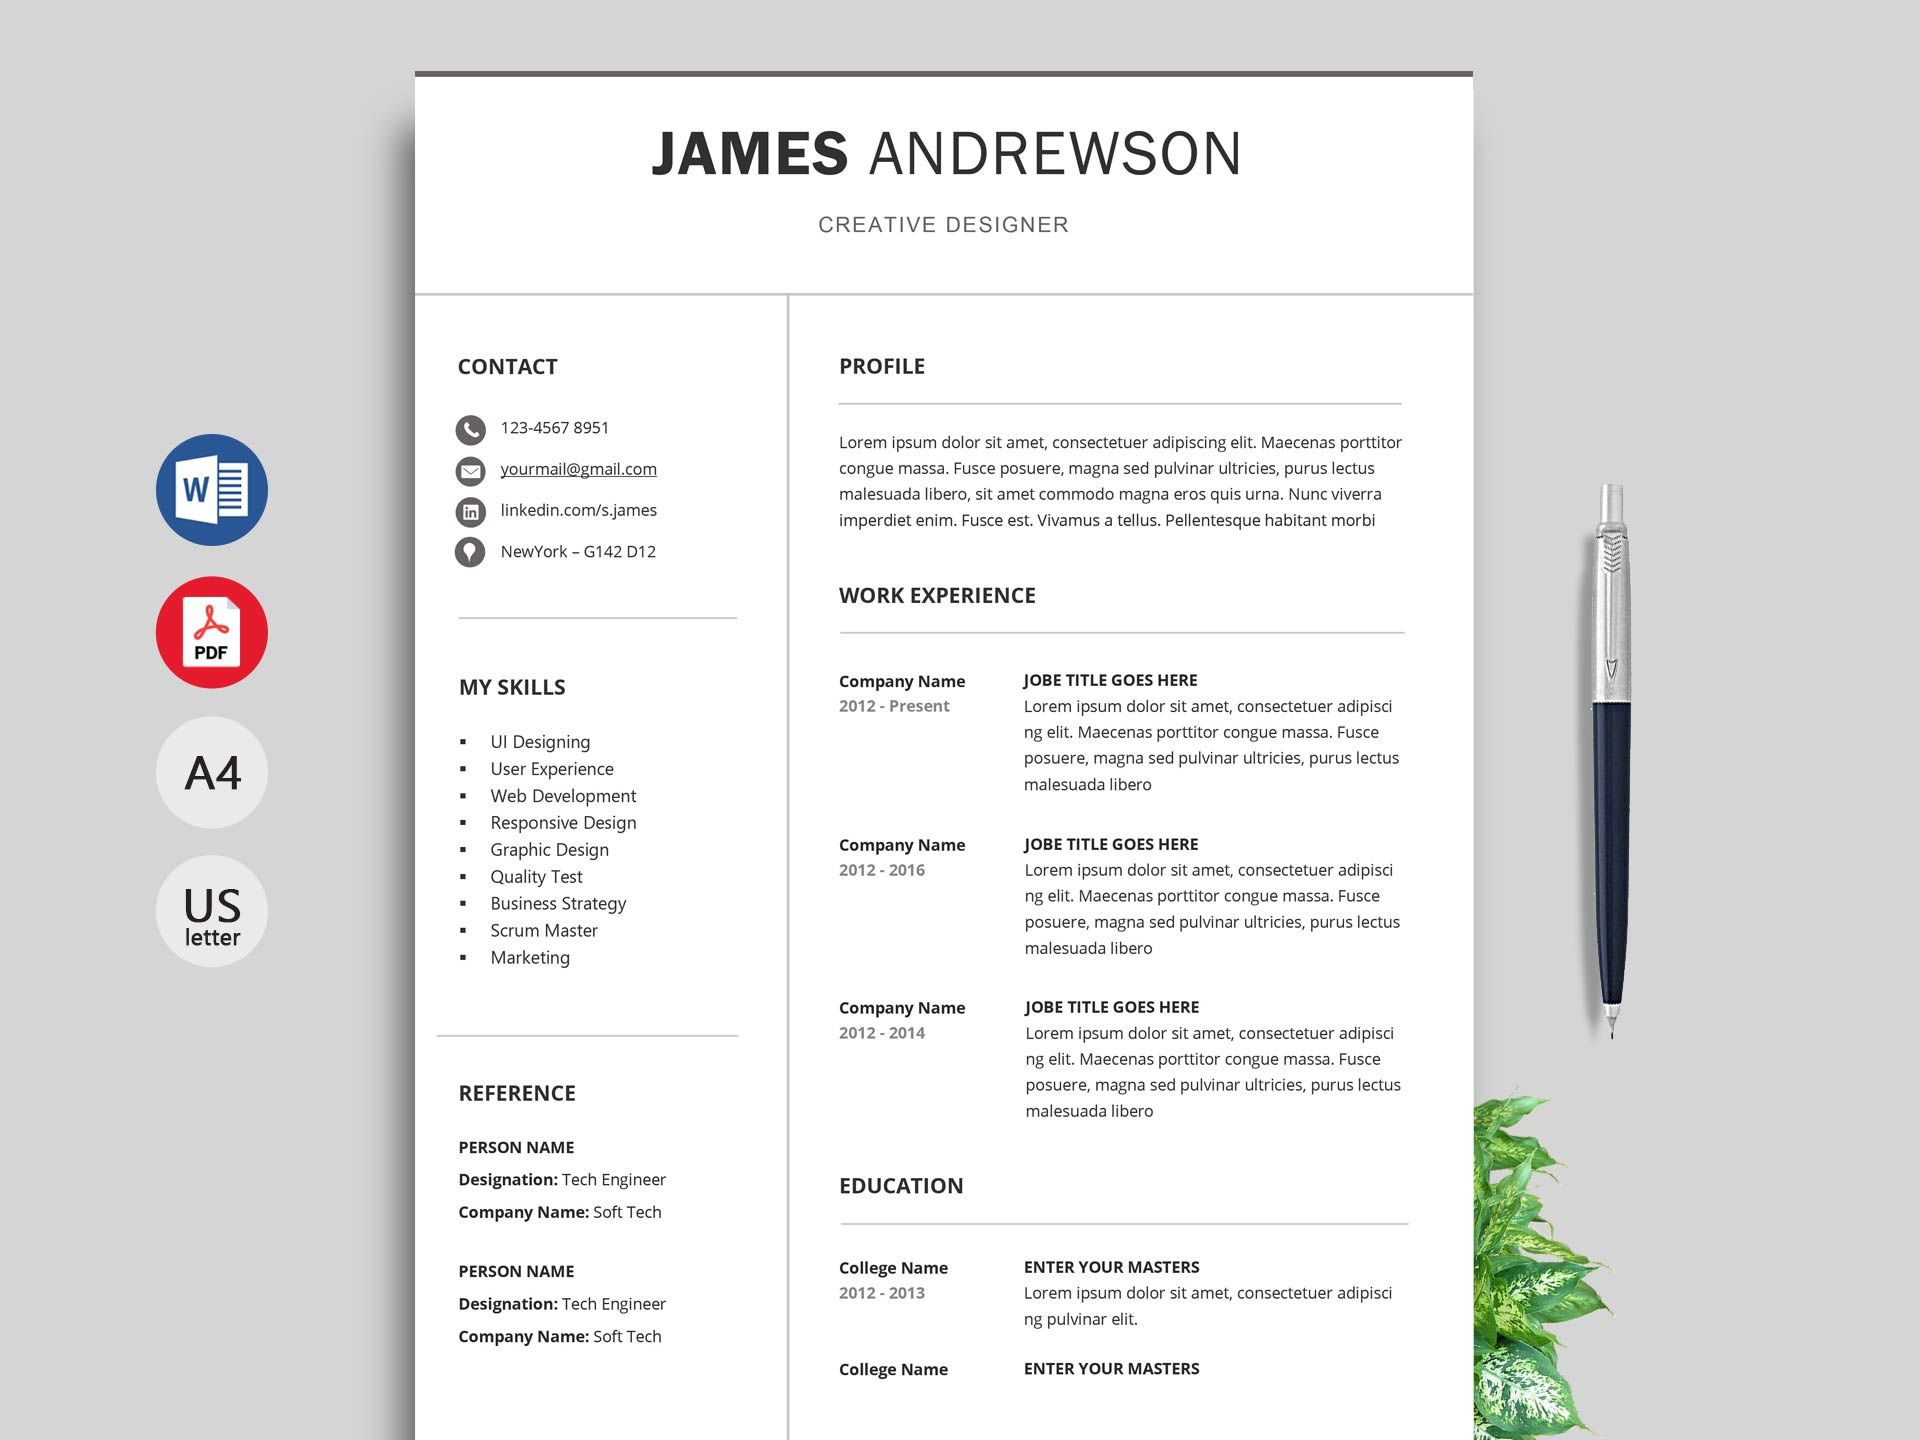 002 Shocking Cv Template Free Download Word Doc Idea  Editable Document For Fresher Student EngineerFull